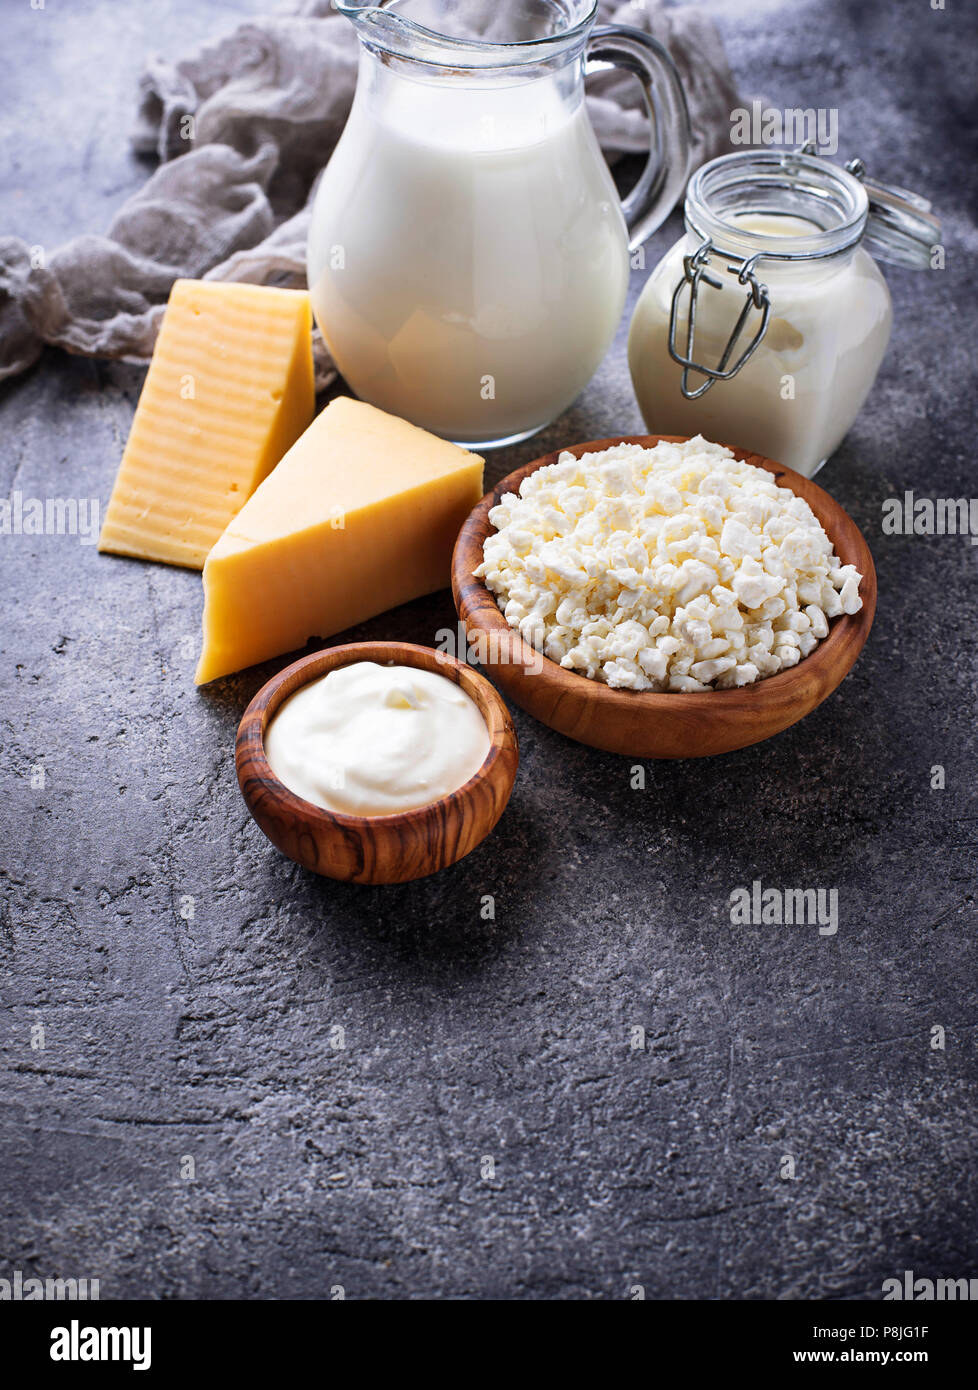 Assortment of various dairy products. - Stock Image